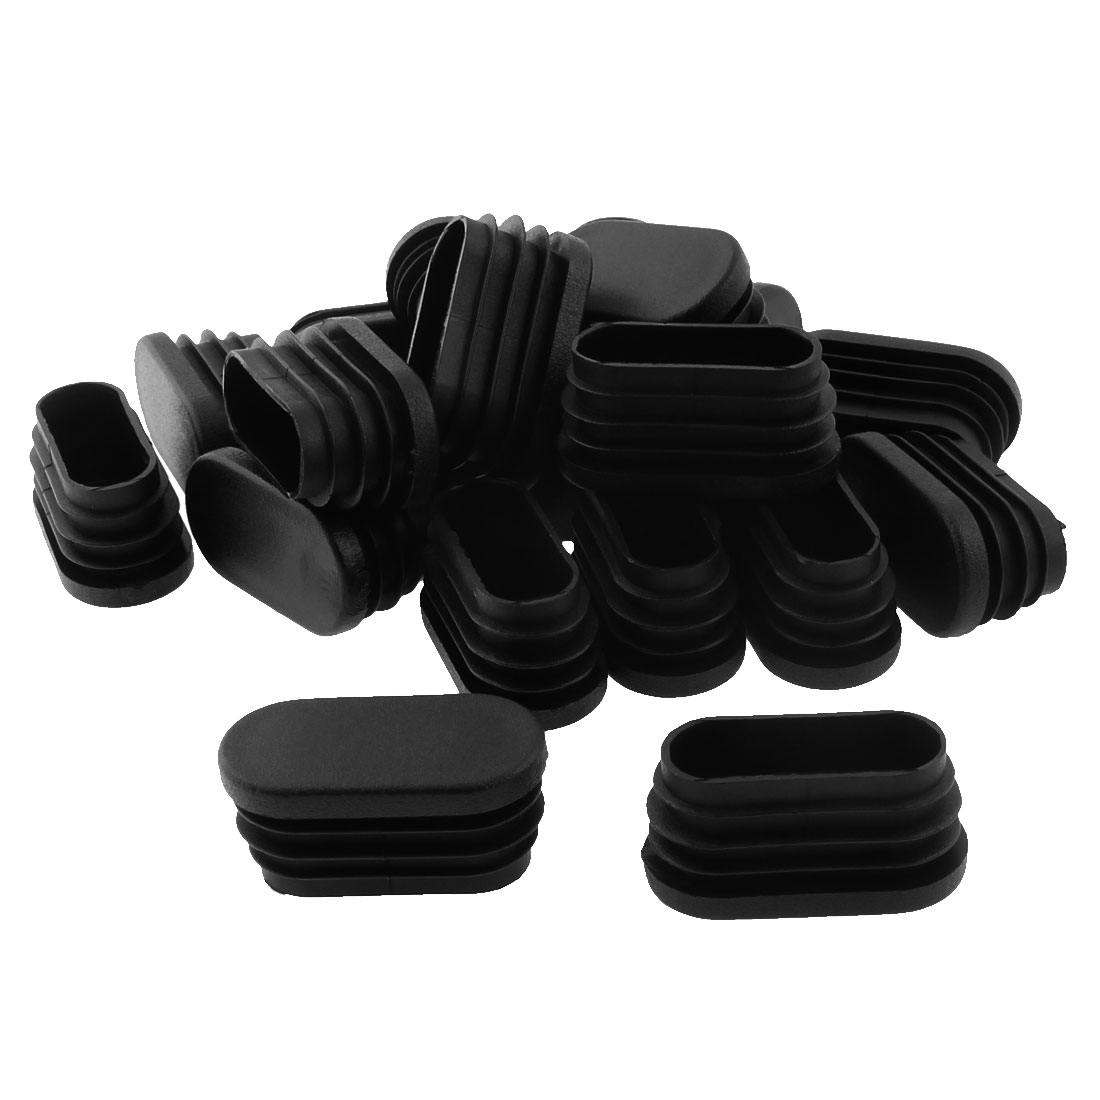 40mm x 20mm Plastic Oval Table Chair Leg Feet Tube Pipe Insert End Cap Black 20pcs